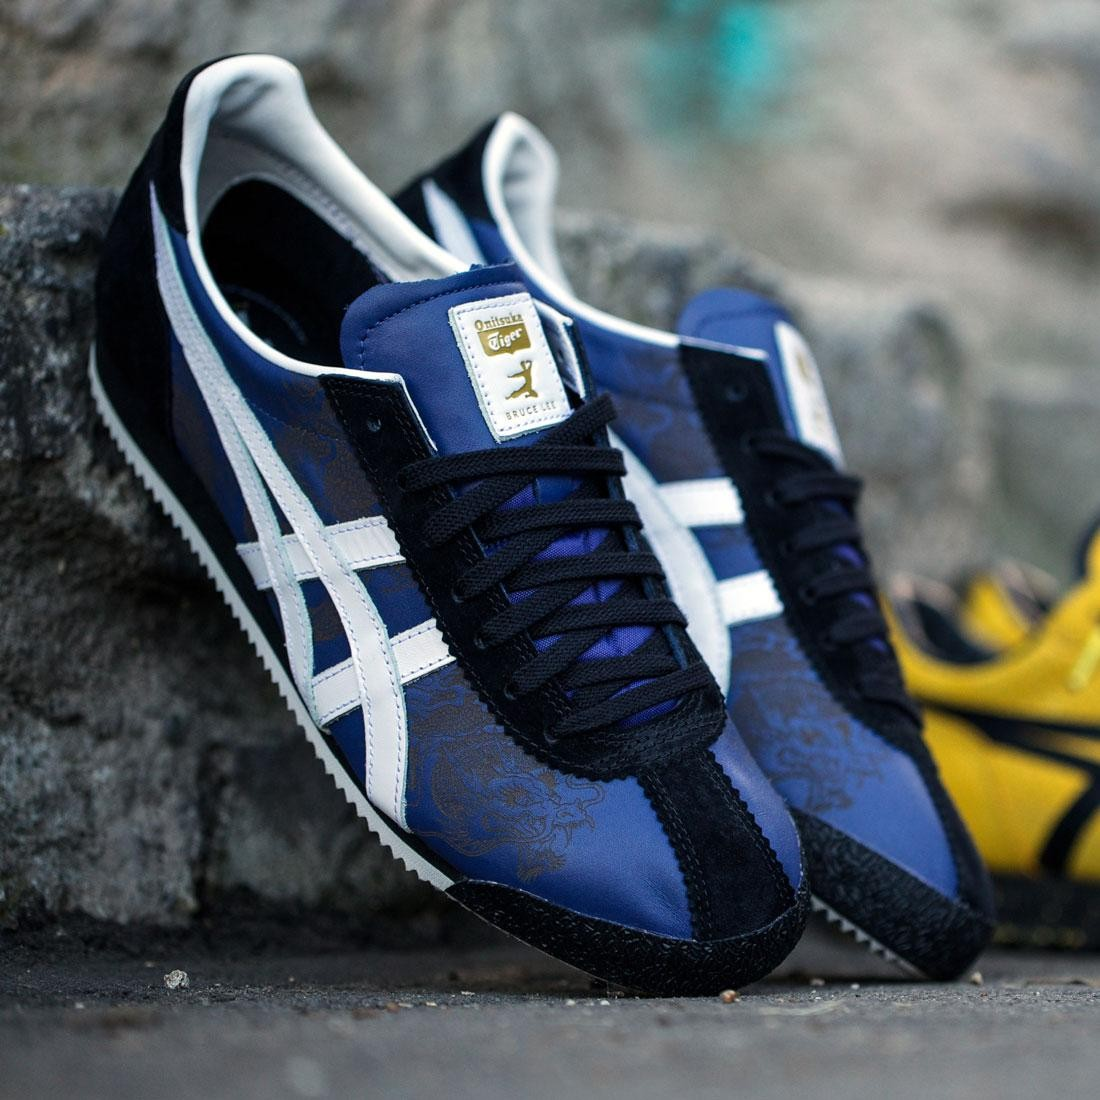 Image result for bruce lee onitsuka